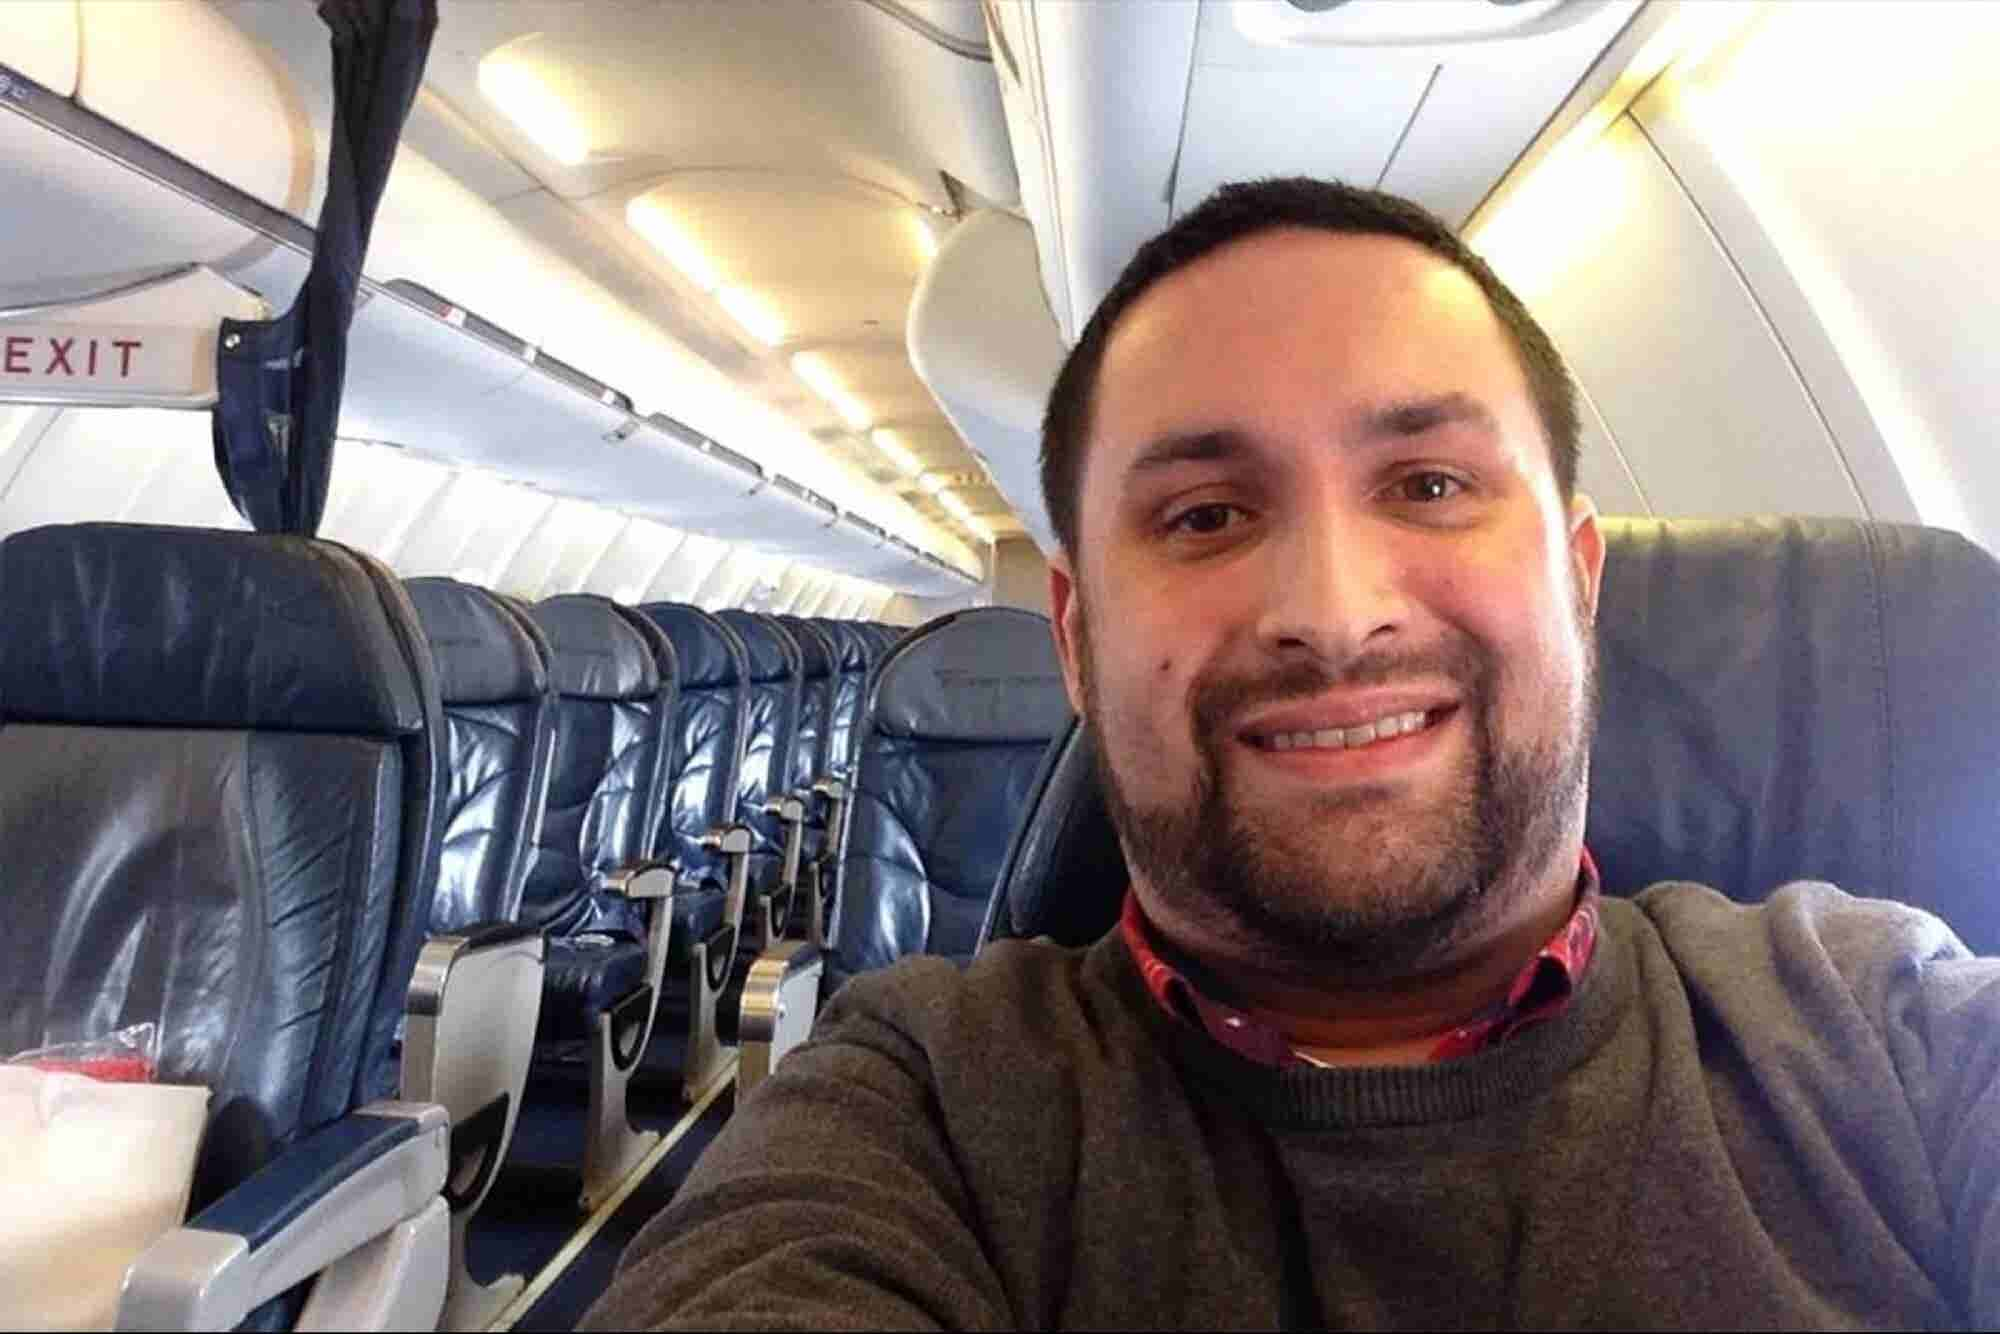 This Guy's Flight Is One He Won't Soon Forget